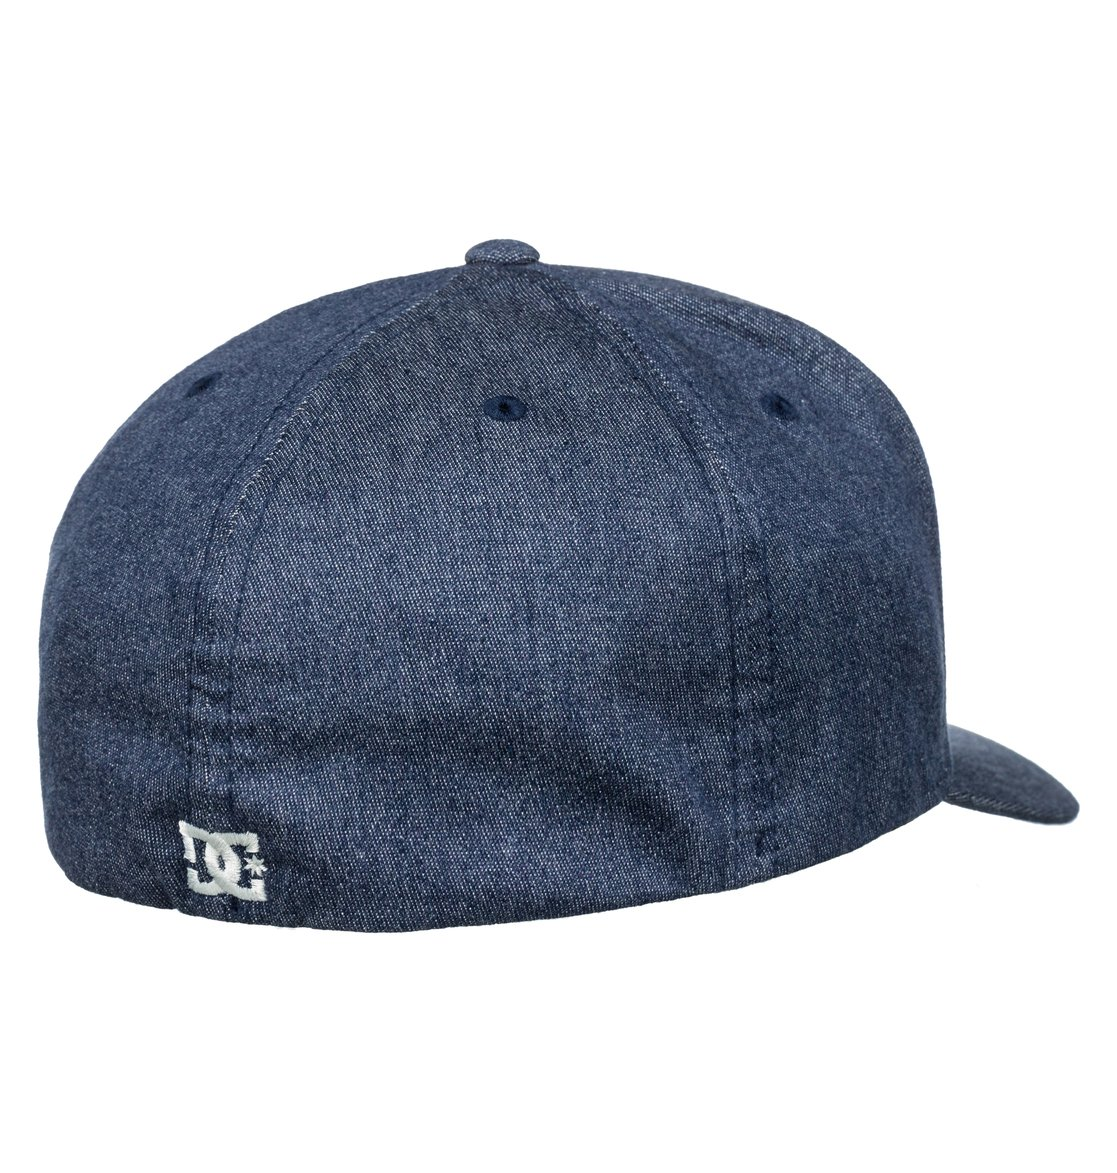 870fb941d91 2 Capstar TX Flexfit Hat Blue ADYHA03561 DC Shoes